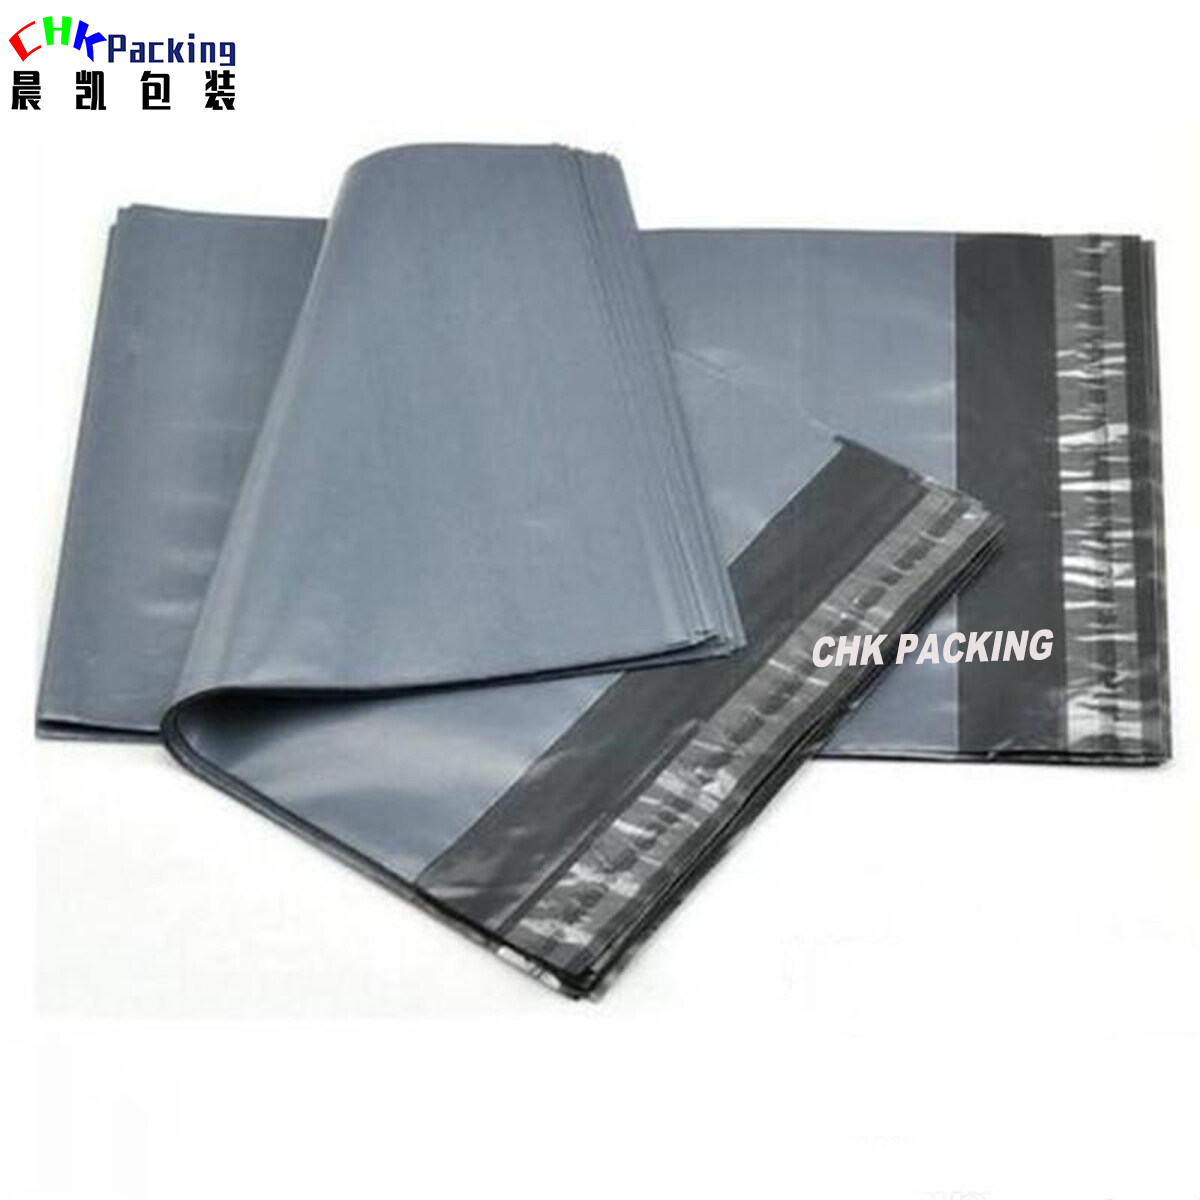 CHK Packing Mailing Postage Bags for Garment Packaging ,white color mailing express bag